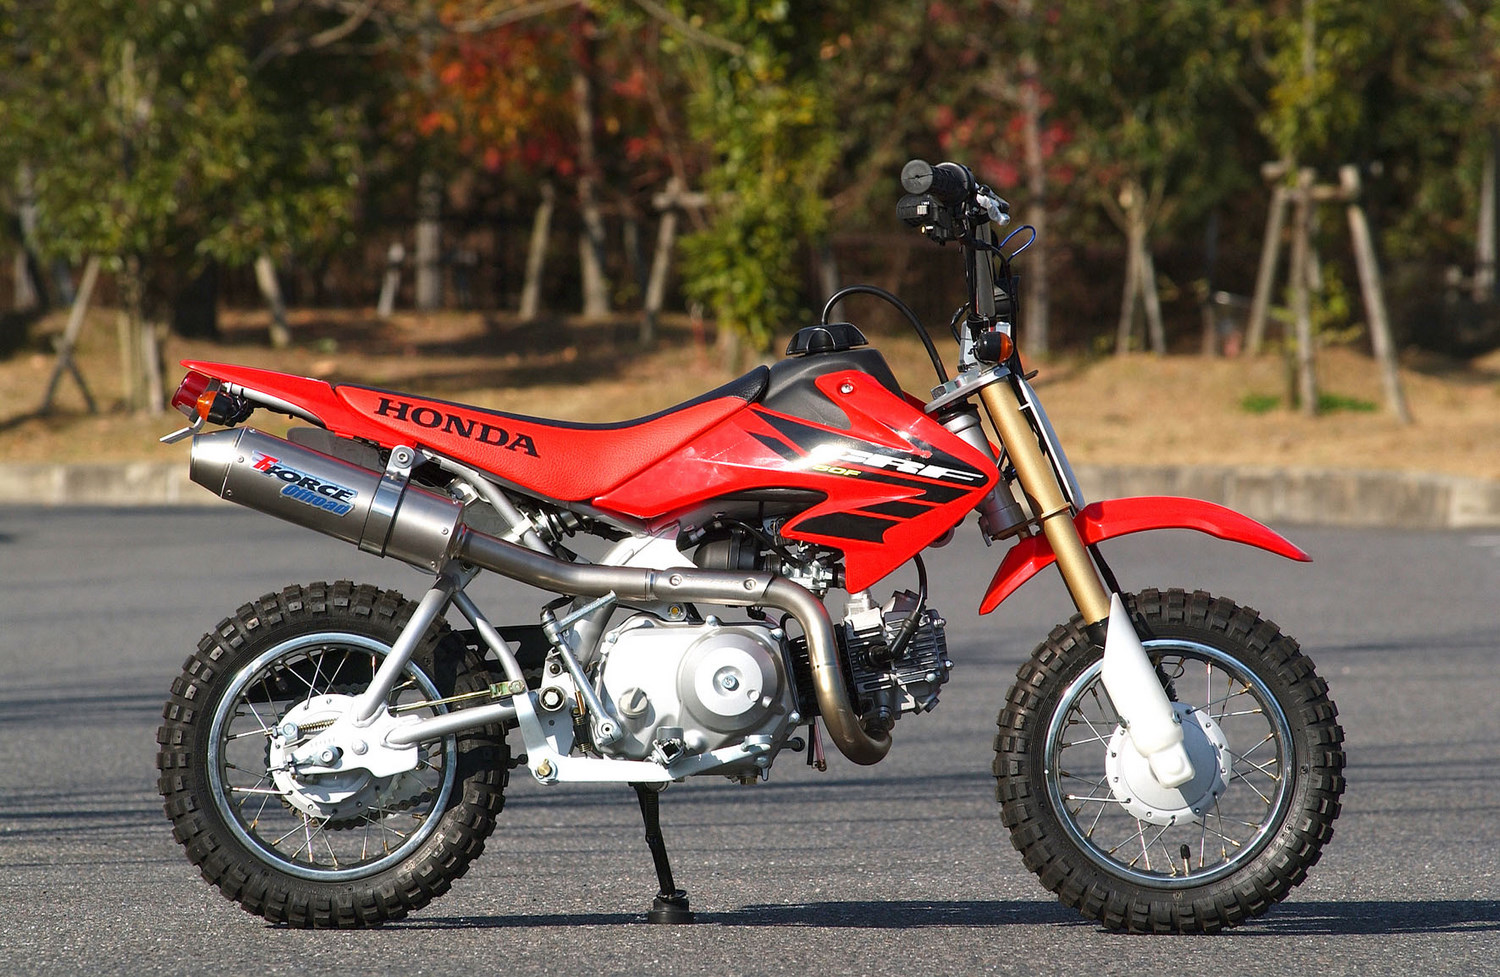 2007 Honda Crf 50 F Pic 7 How Big Is A 125cc Dirt Bike Back Download Picture Size 1500x977 Next